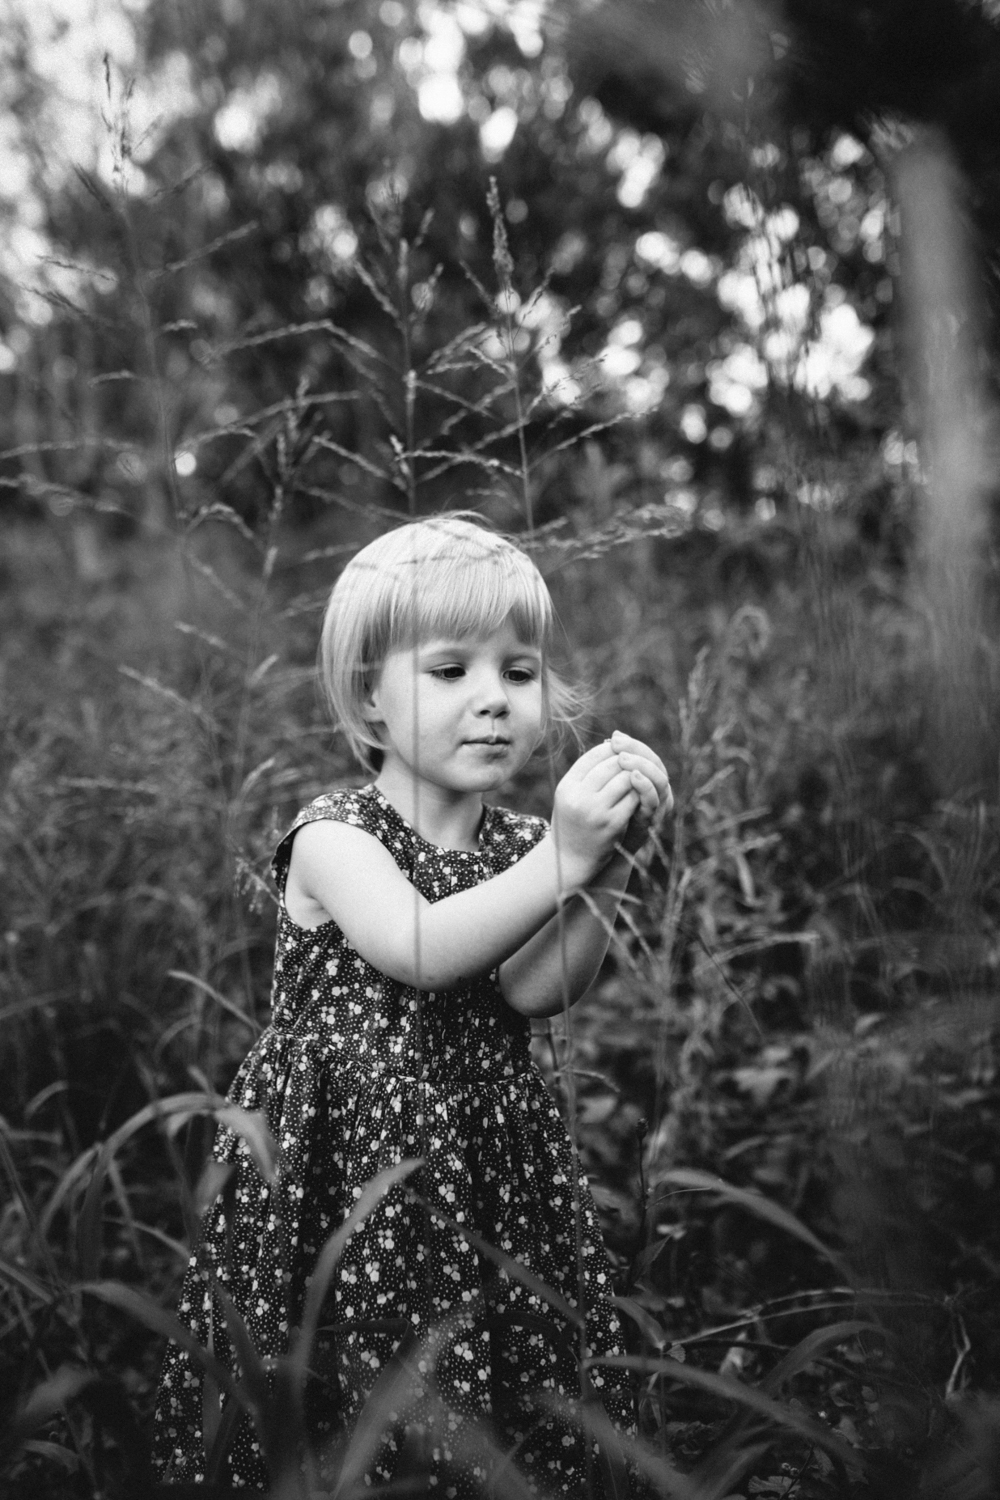 Girl explores in nature during a documentary style documentary photography session.